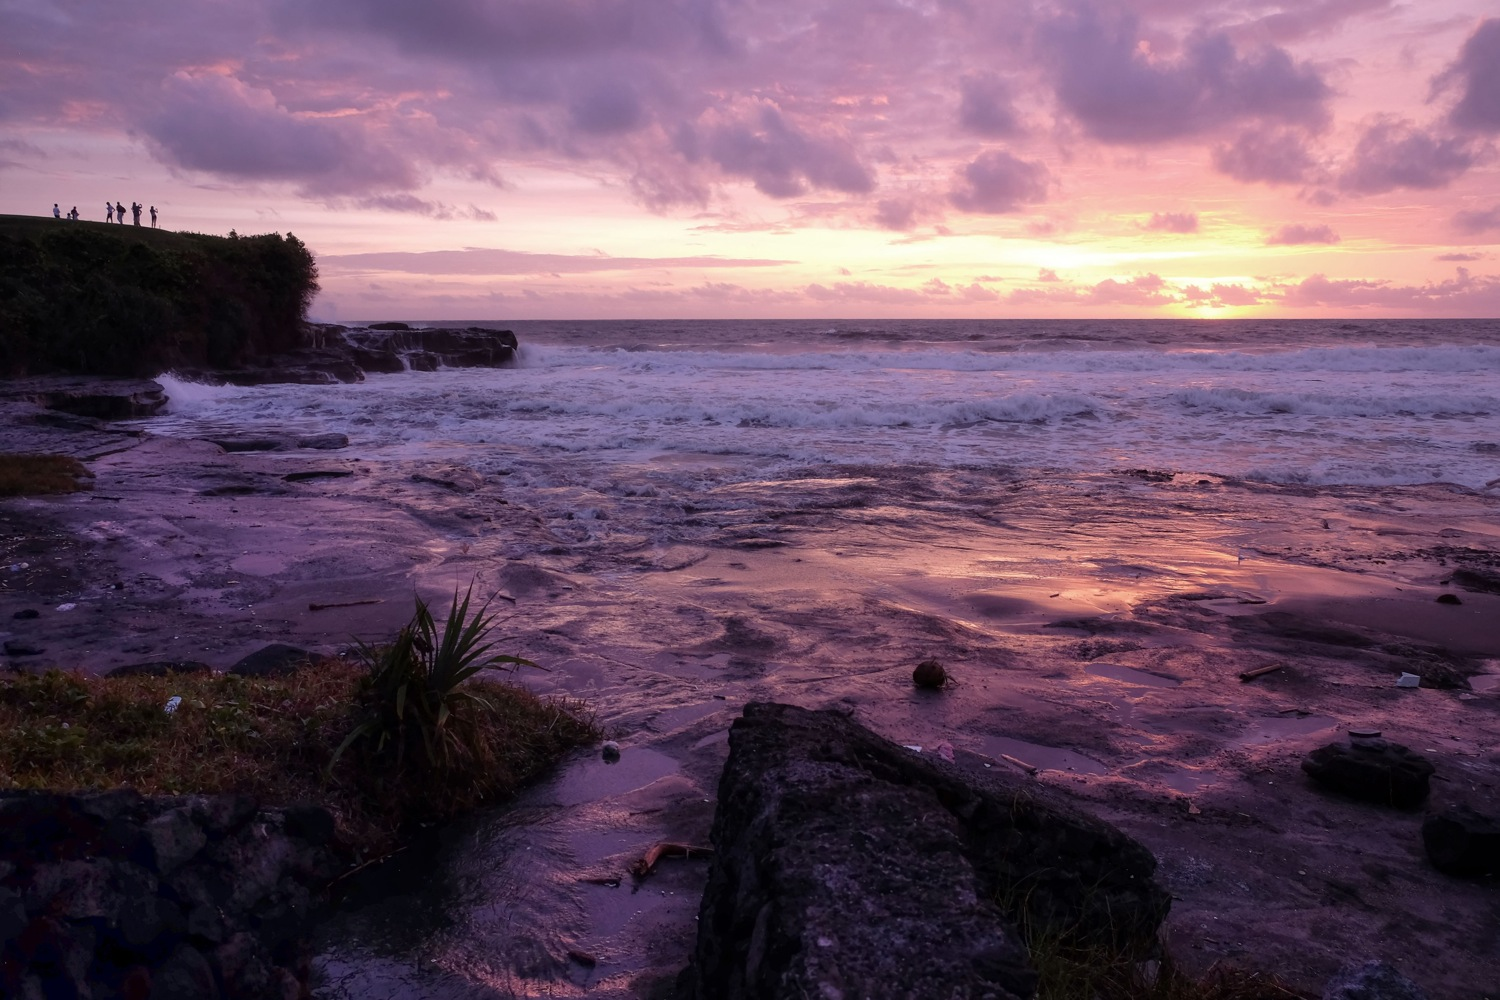 Bali beach near Tanah Lot